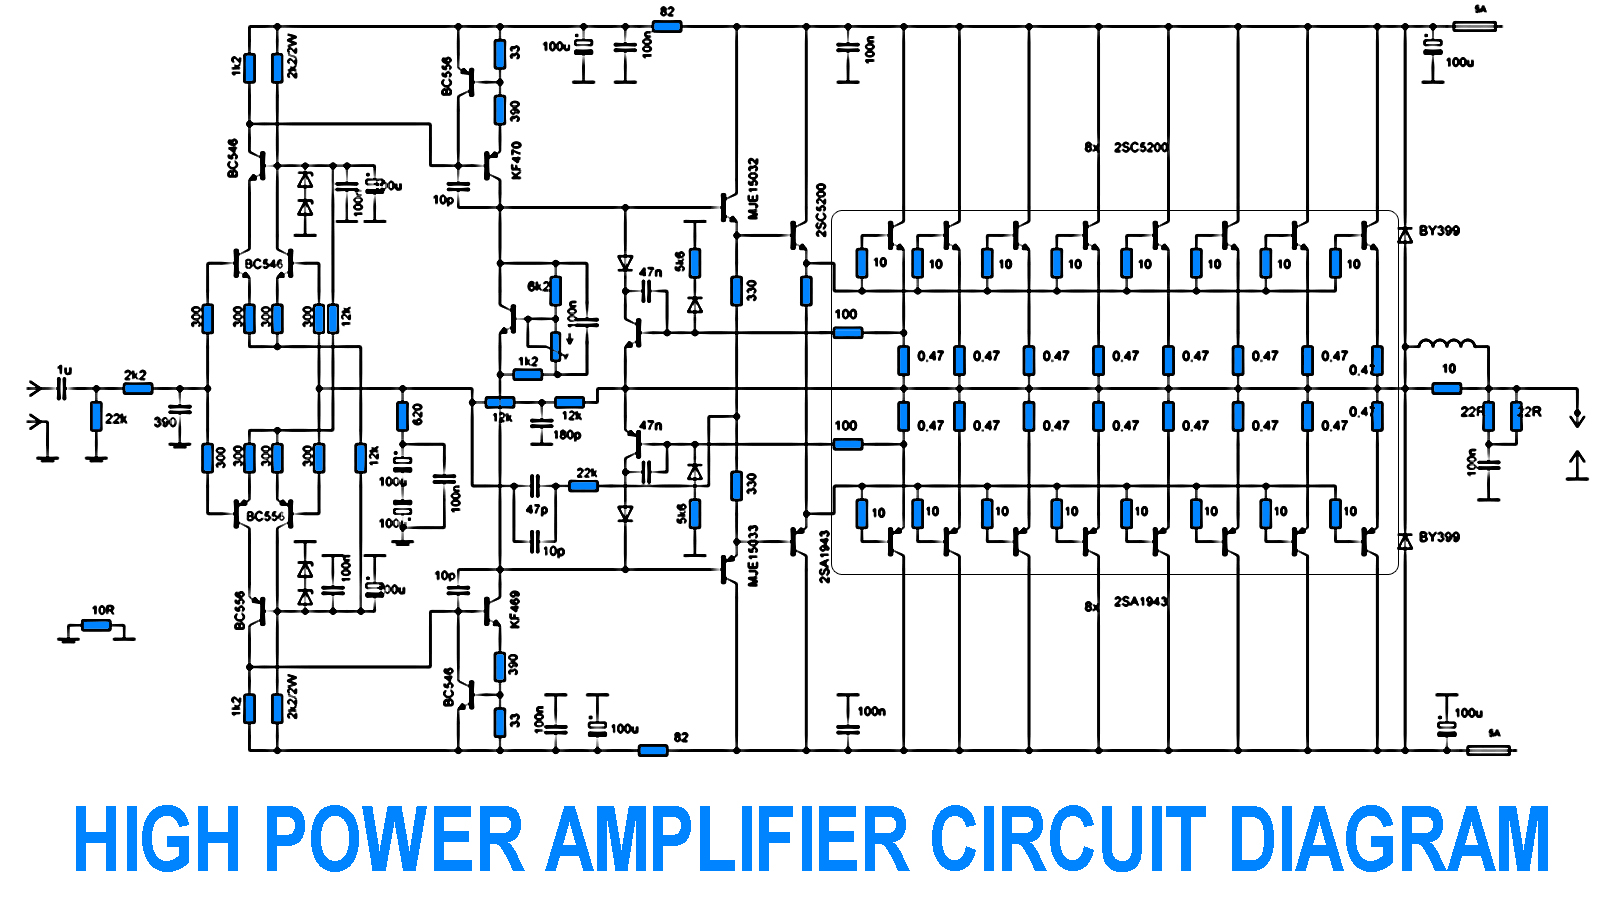 dj amp wiring diagram dj circuit diagrm amplifier ic motorcycle schematic dj circuit diagrm amplifier ic 700w power amplifier 2sc5200